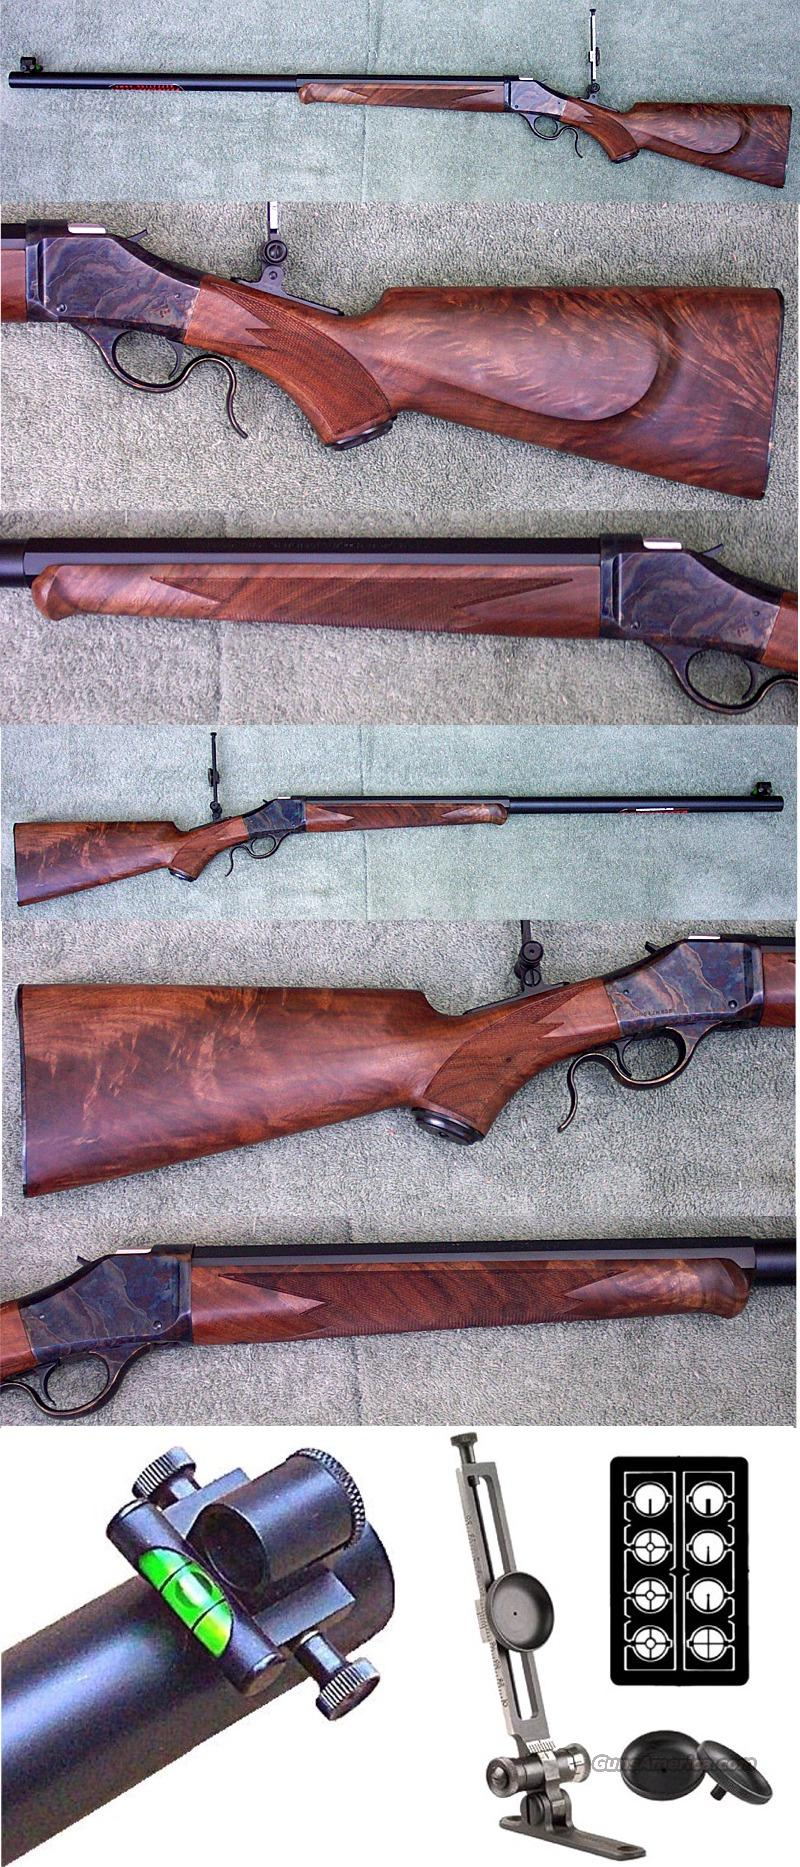 Winchester 1885 High Wall Ltd. Series 45-70 BPCR  Guns > Rifles > Winchester Rifles - Modern Bolt/Auto/Single > Single Shot